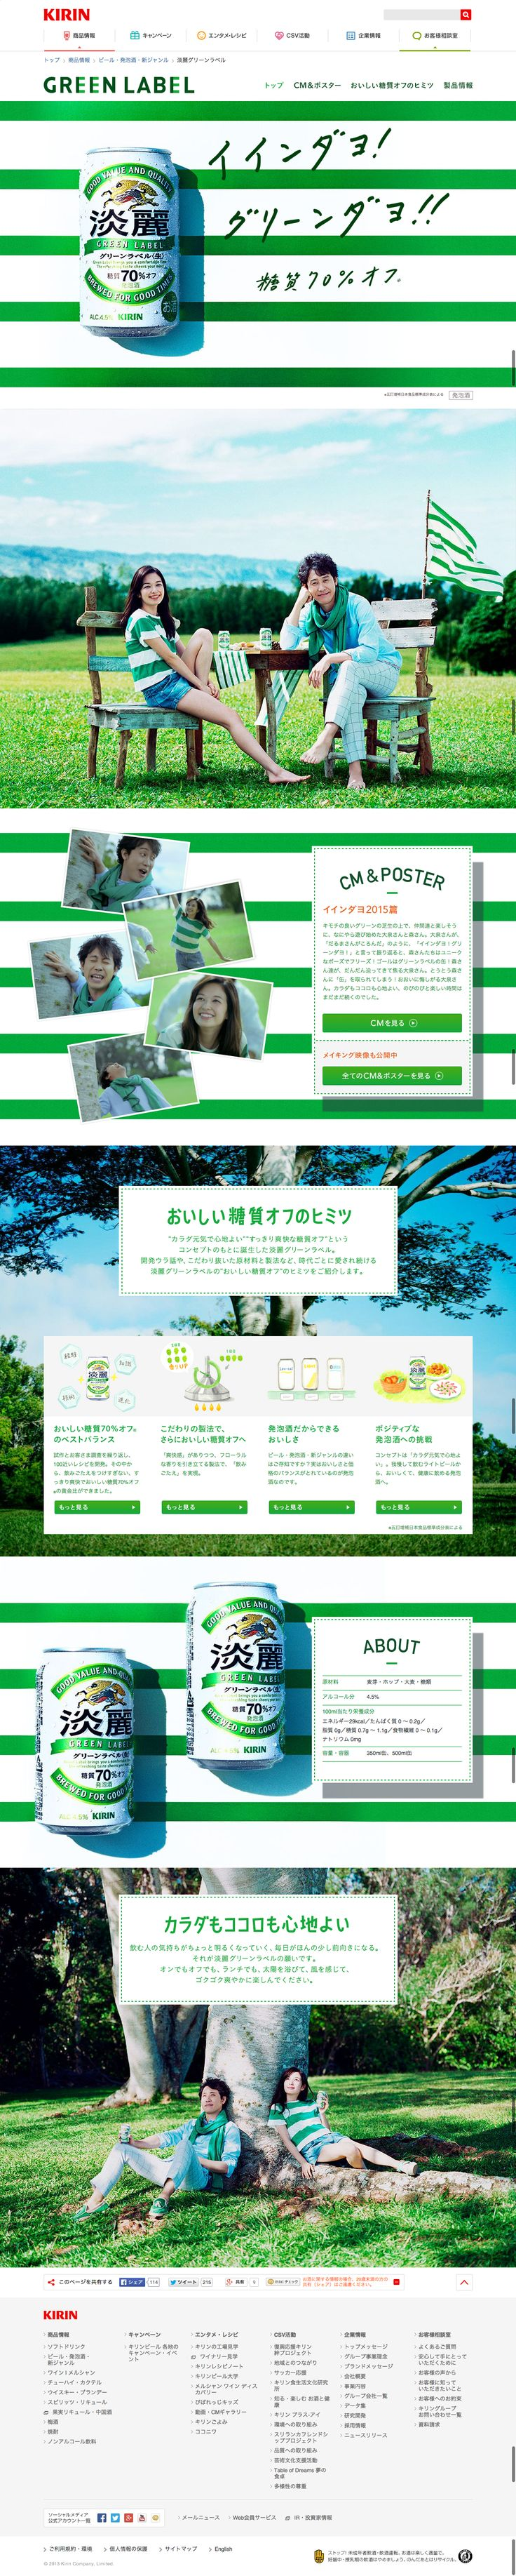 http://www.kirin.co.jp/products/beer/greenlabel/